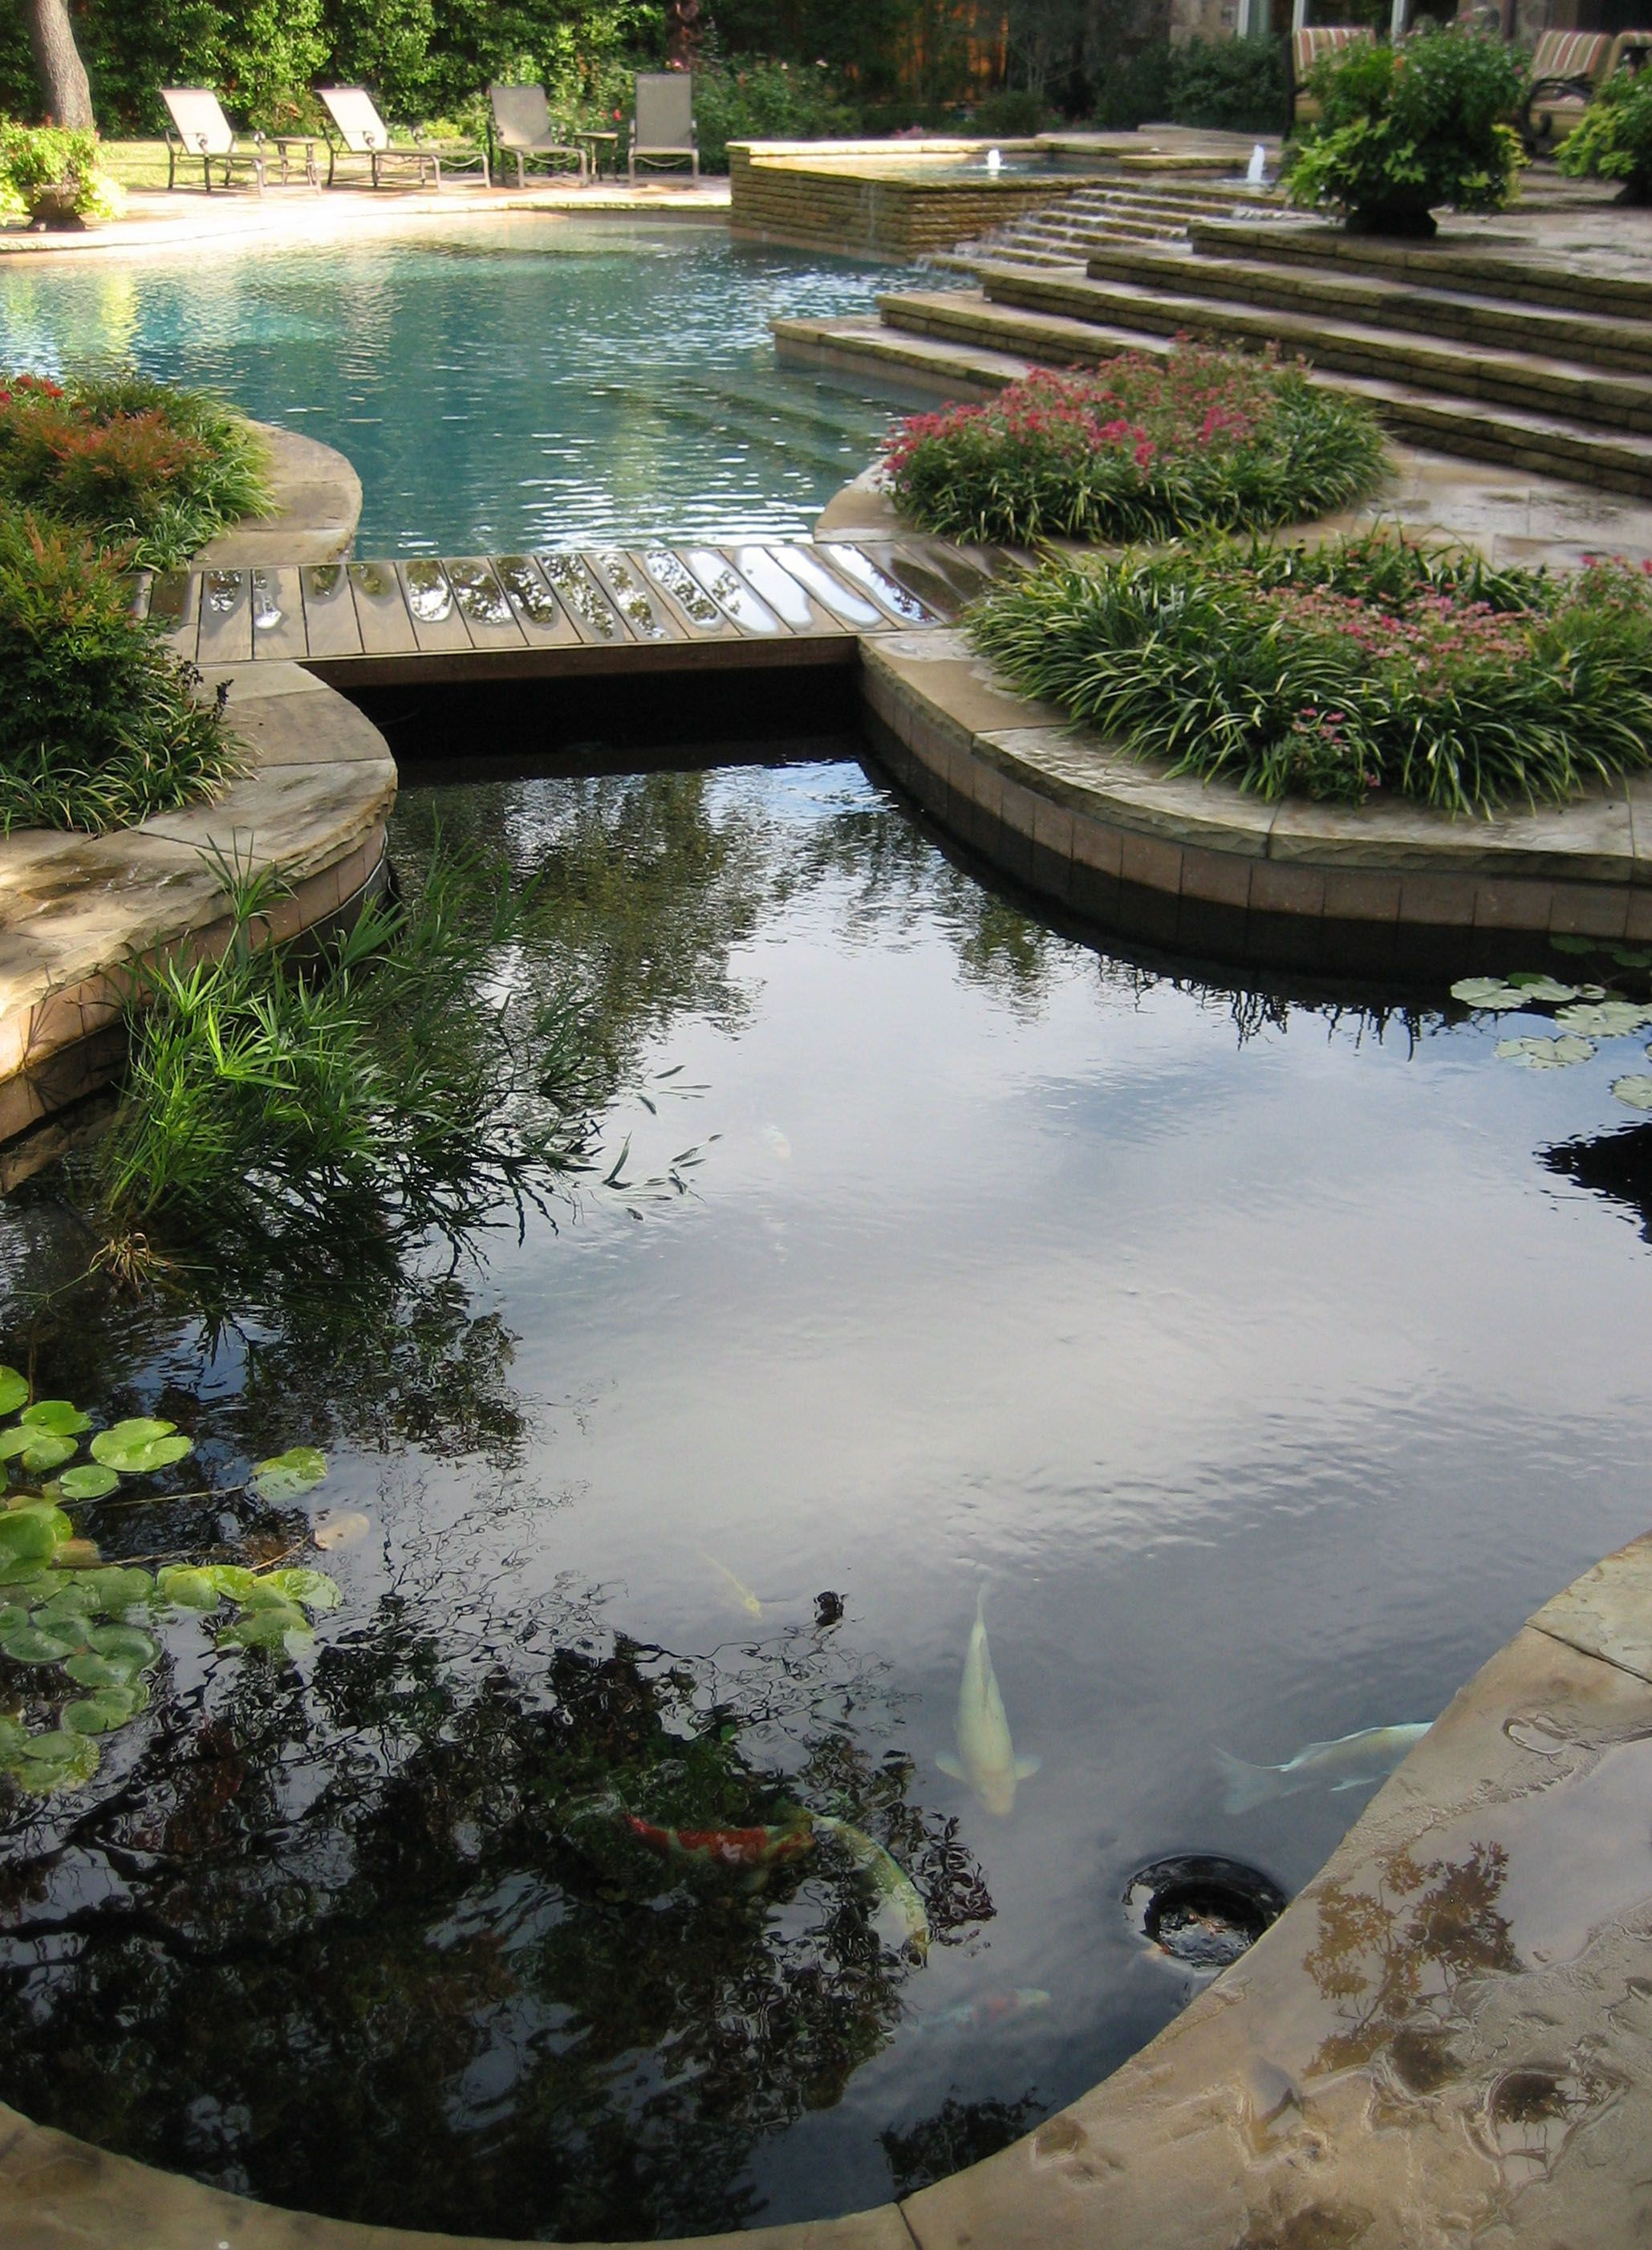 Koi pond and pool design with hidden barrier underneath for Koi pond designs south africa